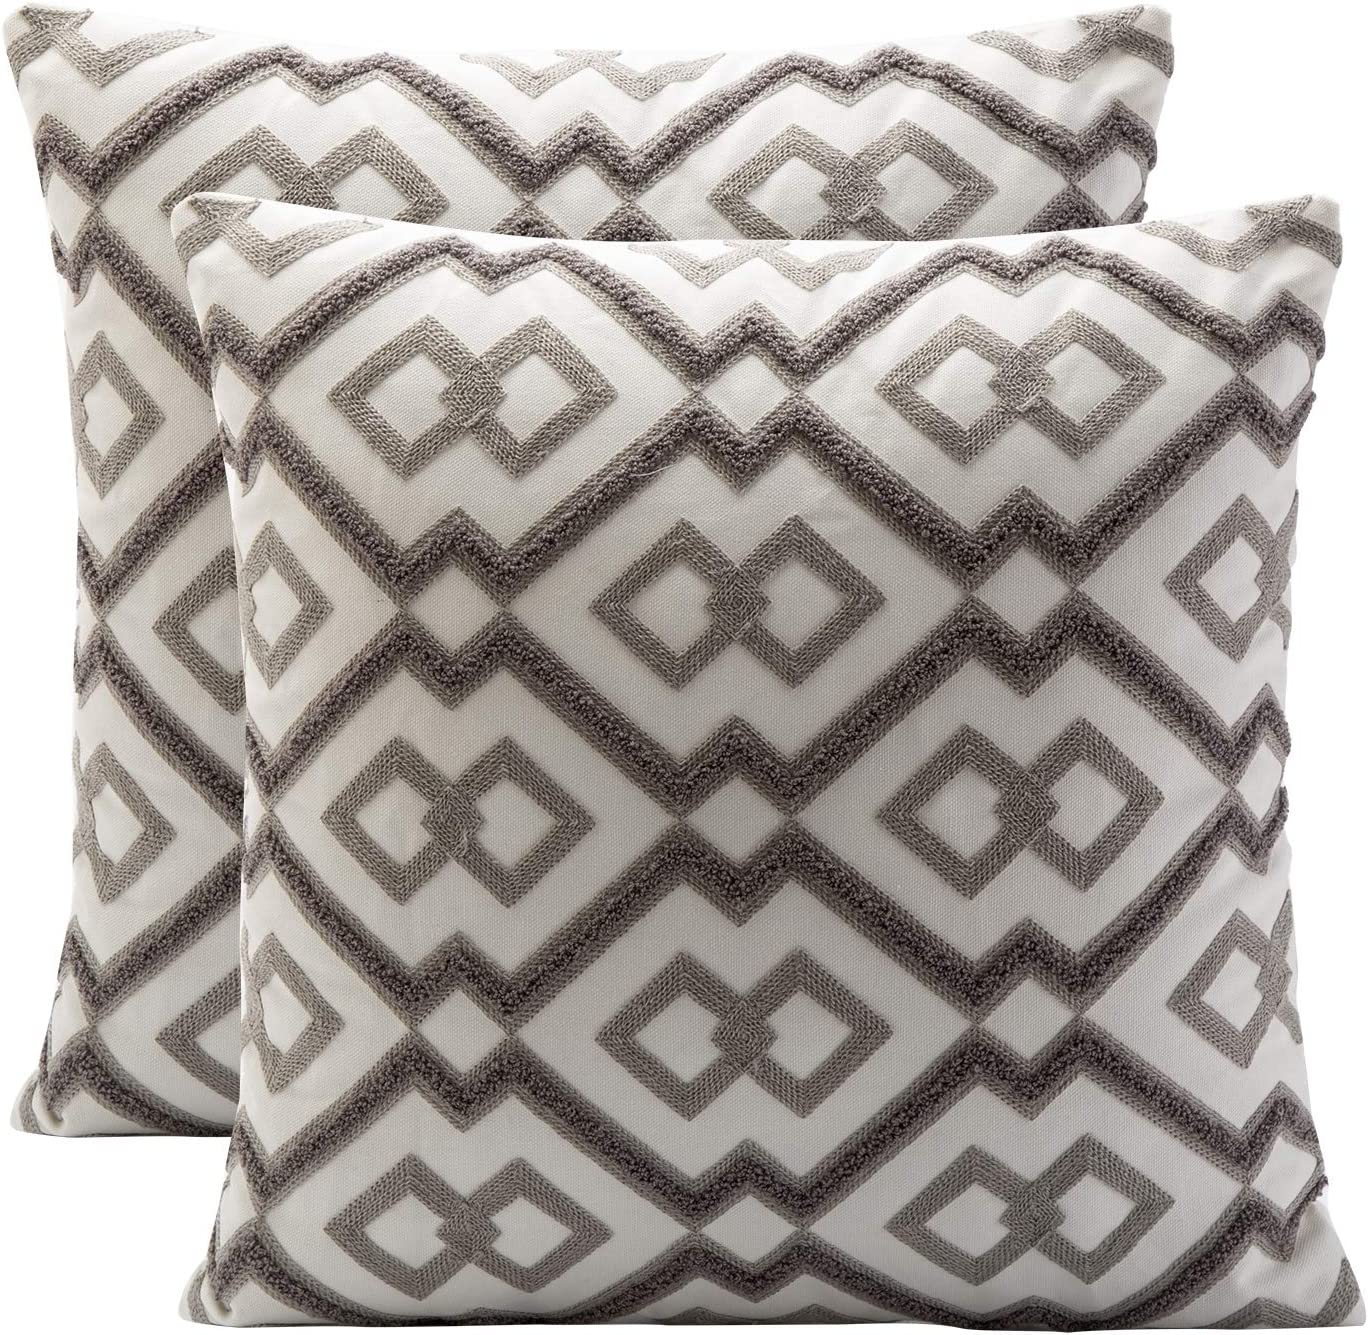 BOYSUM Set of 2 Morocco Boho Diamond Decorative Pillow Covers Cotton Washed Linen Pillow Covers Boho Geometric Throw Pillow Cases for Couch Sofa Cushion Cover Home Decor 18 x 18 inches,Gray